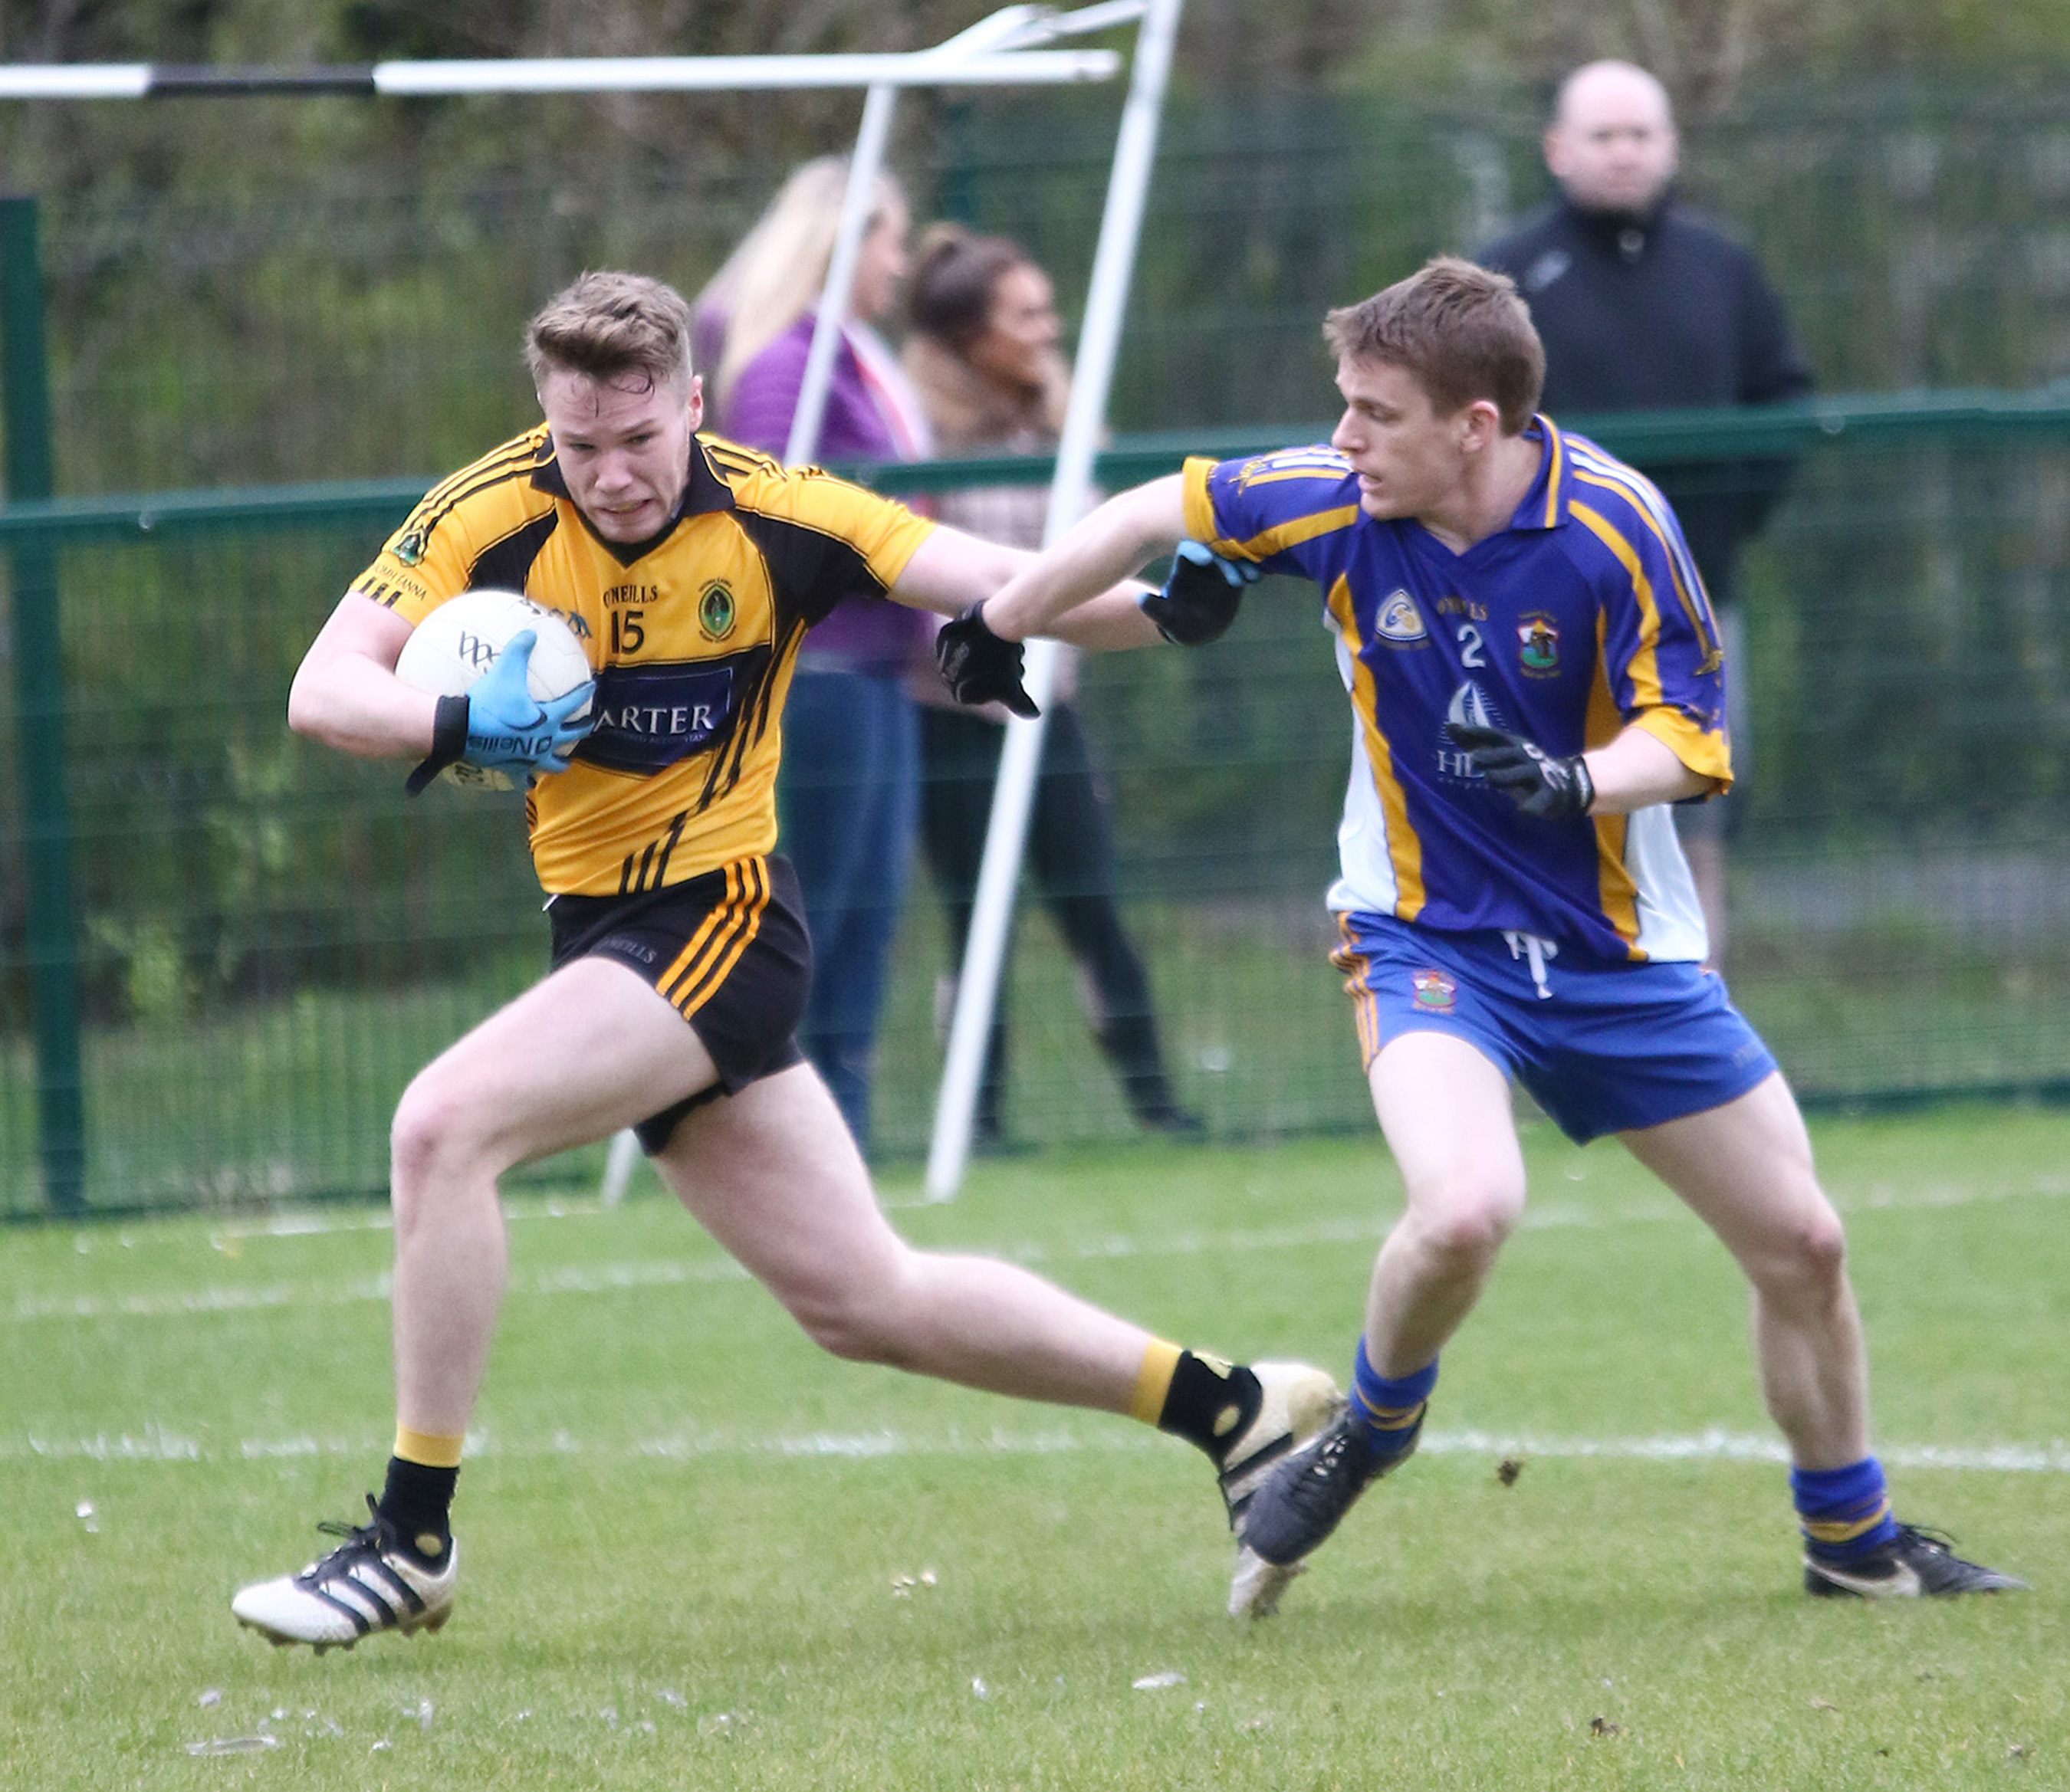 St Enda's attacker Ruairi Scott, pictured in action against St Brigid's earlier this year, will be one of the key players for the Glengormley men when they take on Michael Davitt's on Saturday